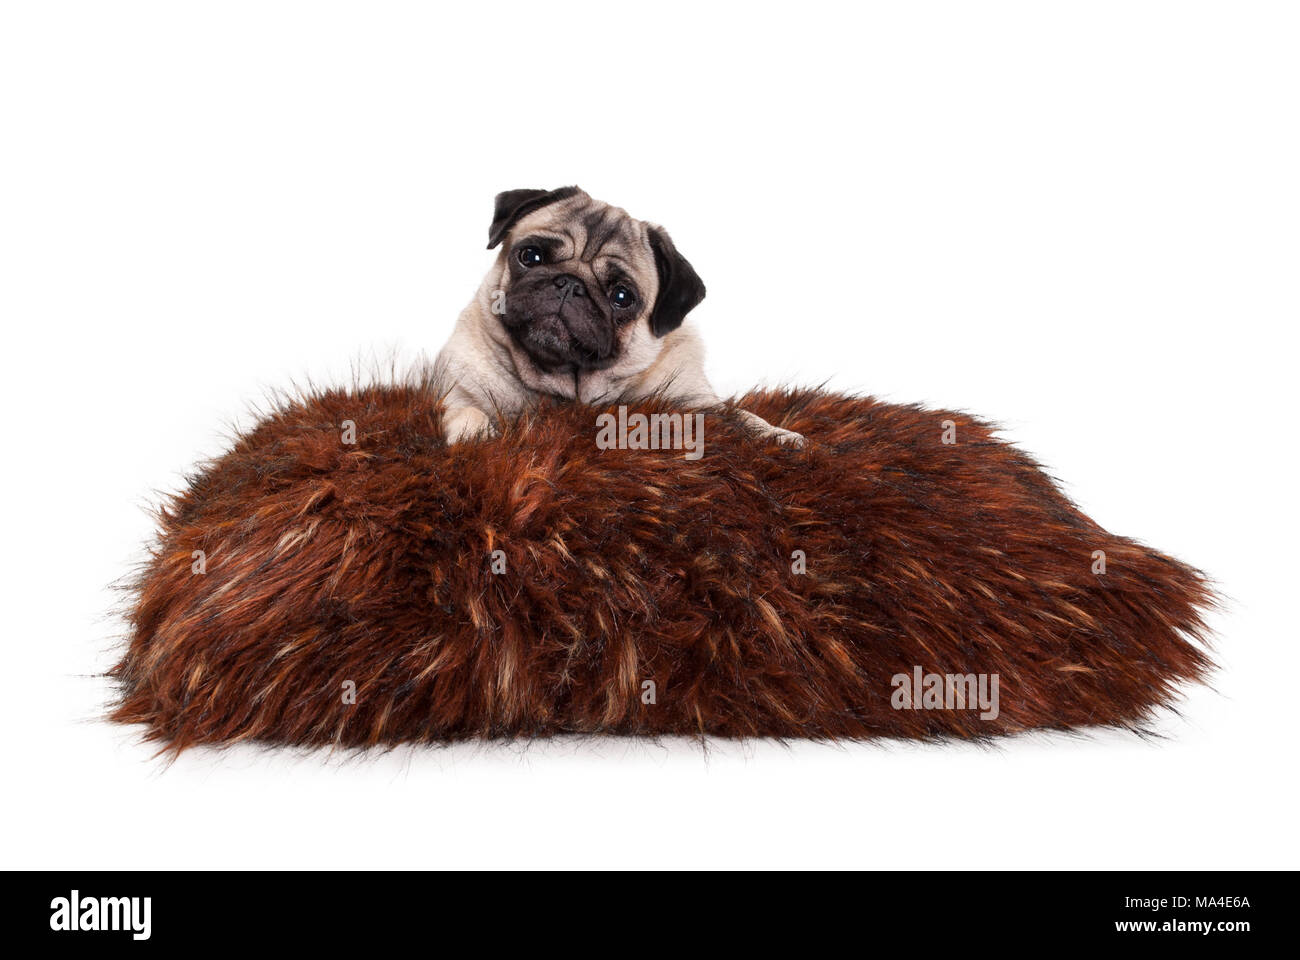 cheeky pug puppy dog lying down on fuzzy fake fur pillow, isolated on white background - Stock Image